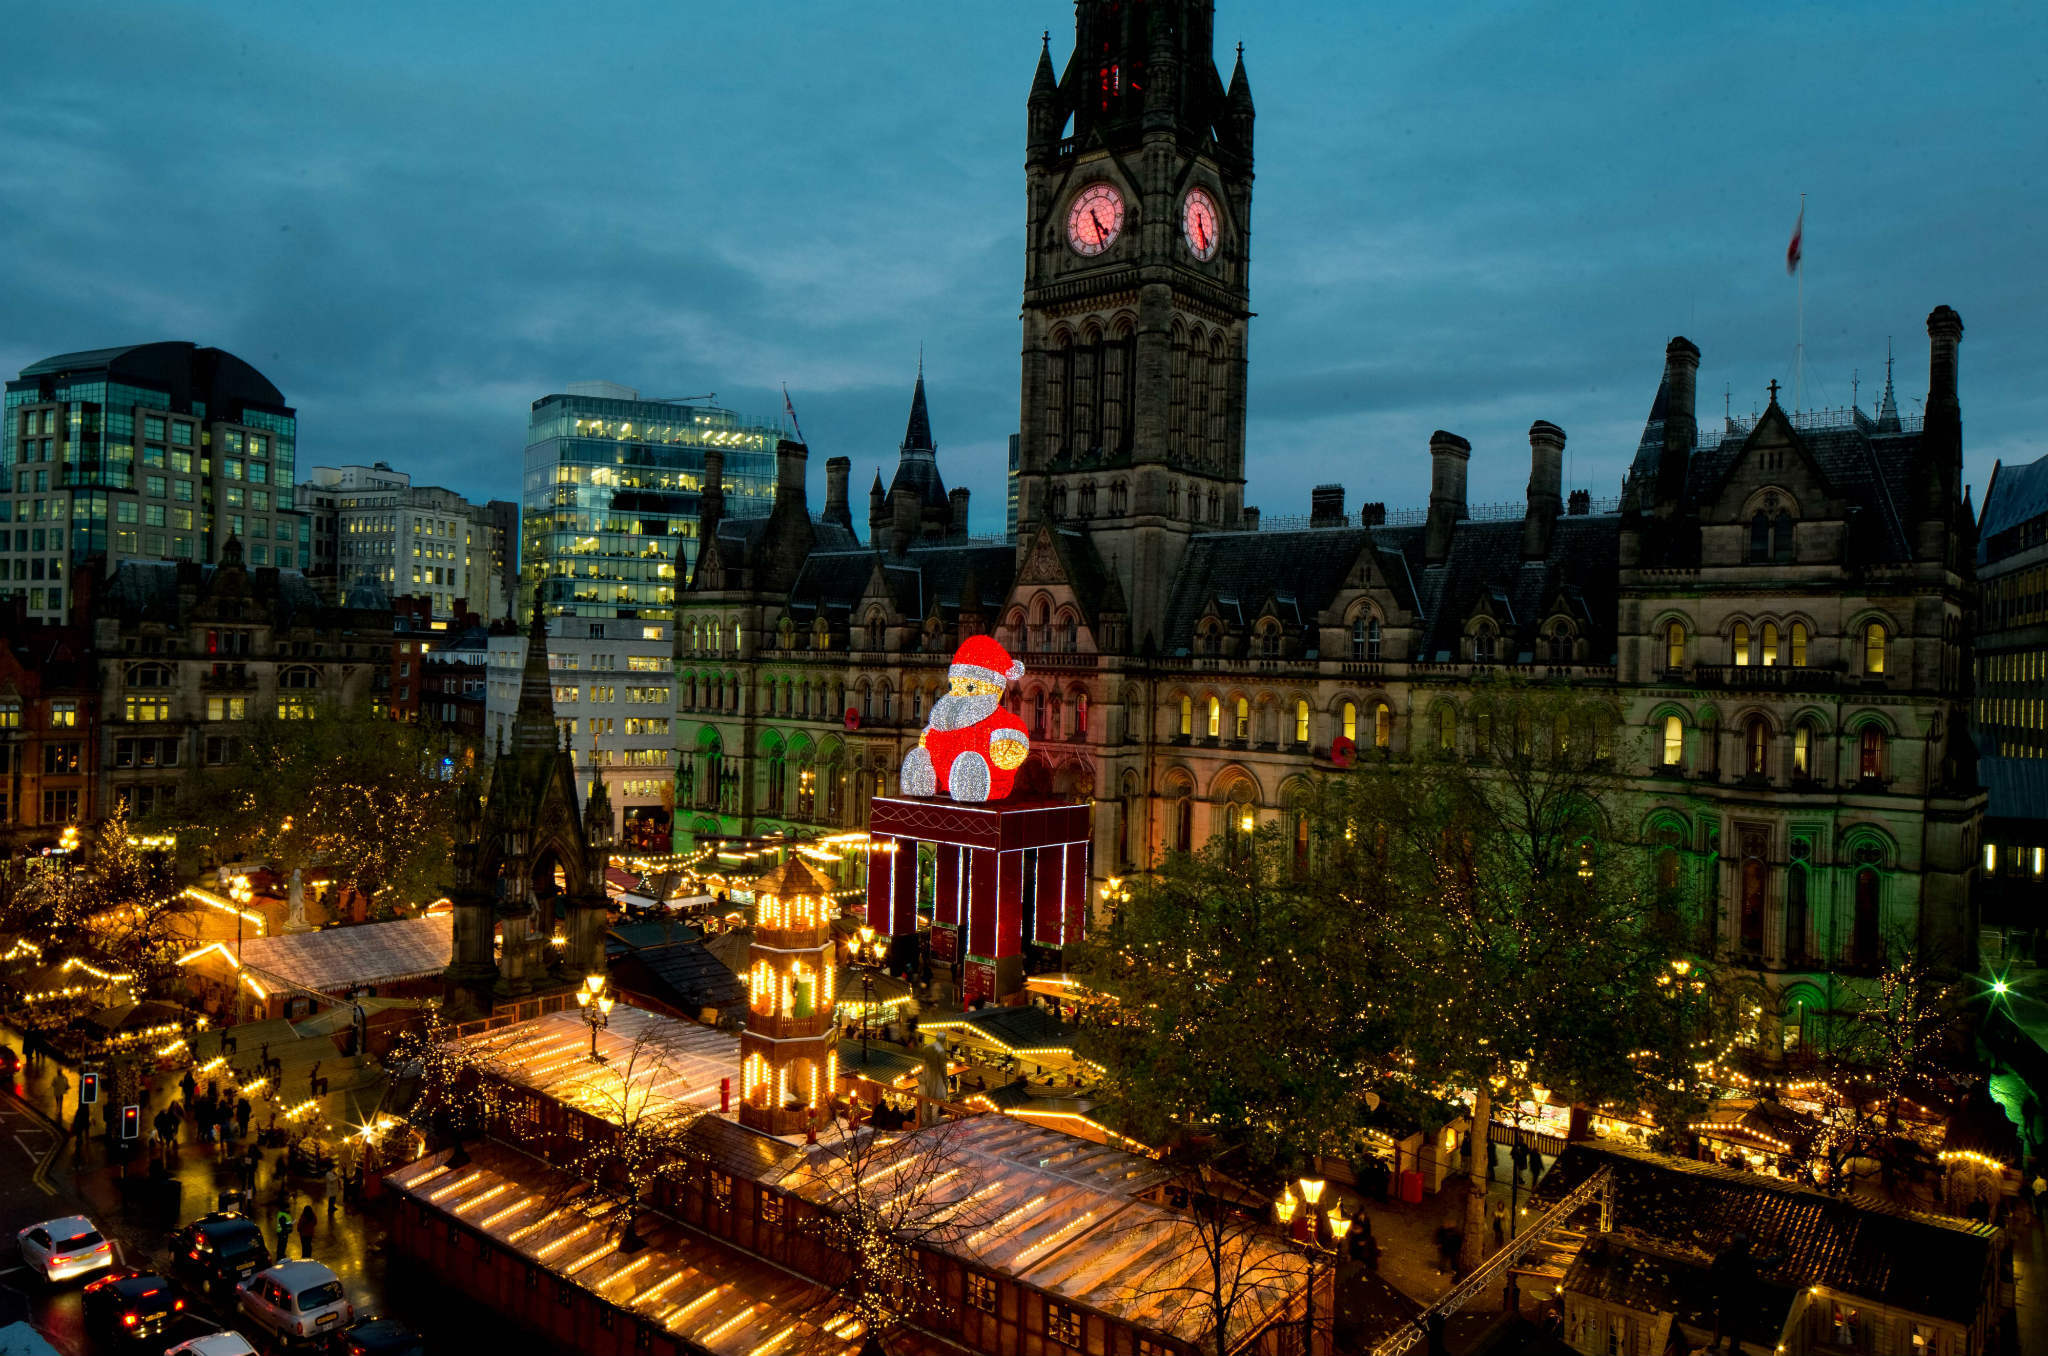 Albert Square Christmas Market